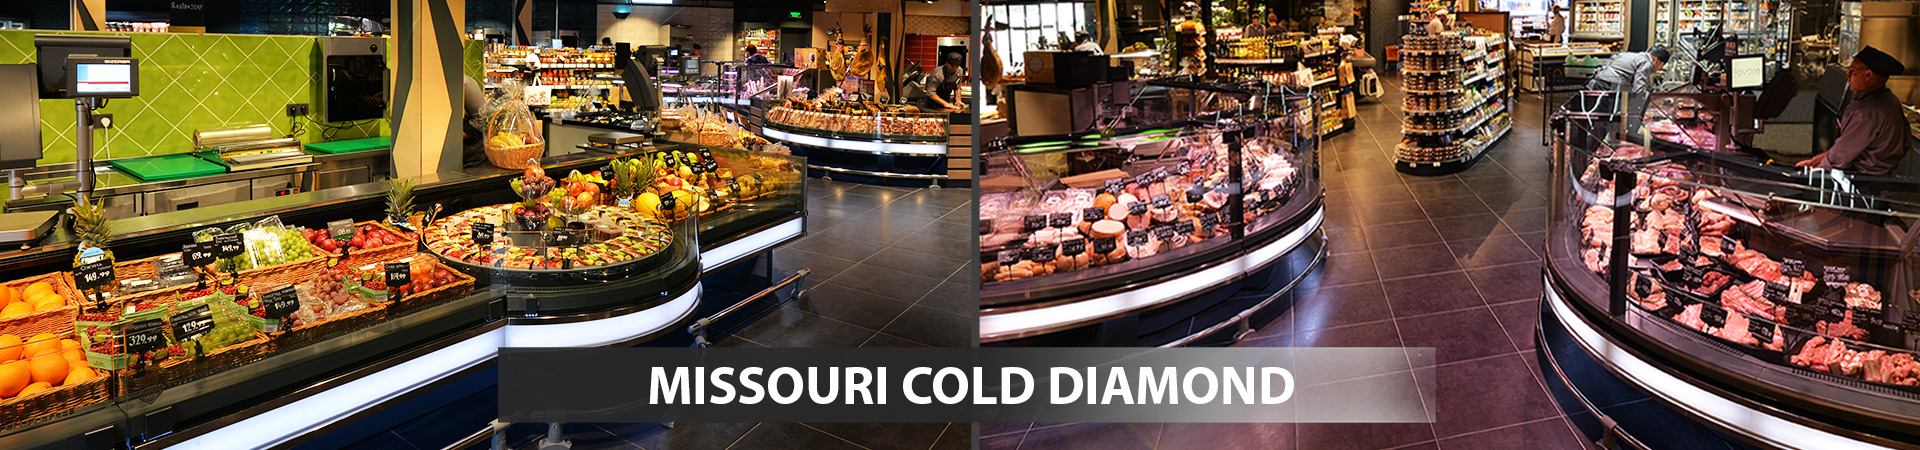 Витрины Missouri cold diamond